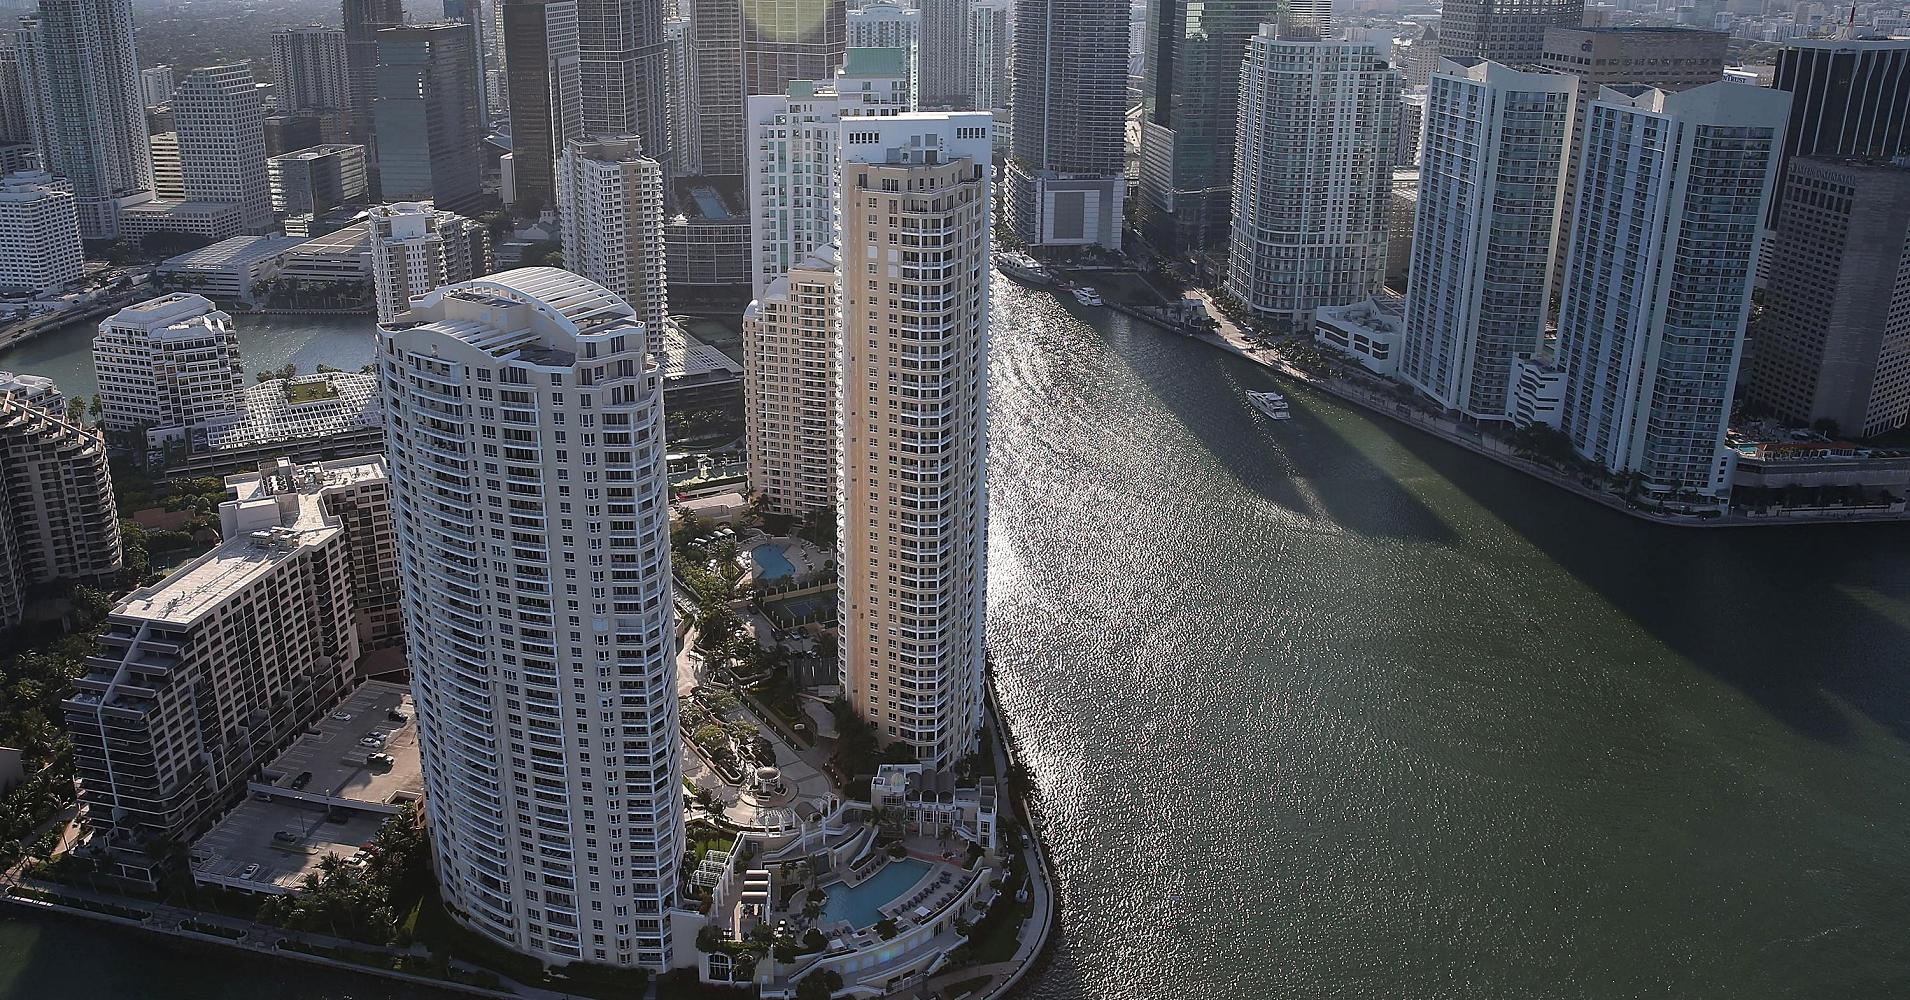 There's a one-bedroom condo for sale in Miami — and the seller will only accept bitcoin